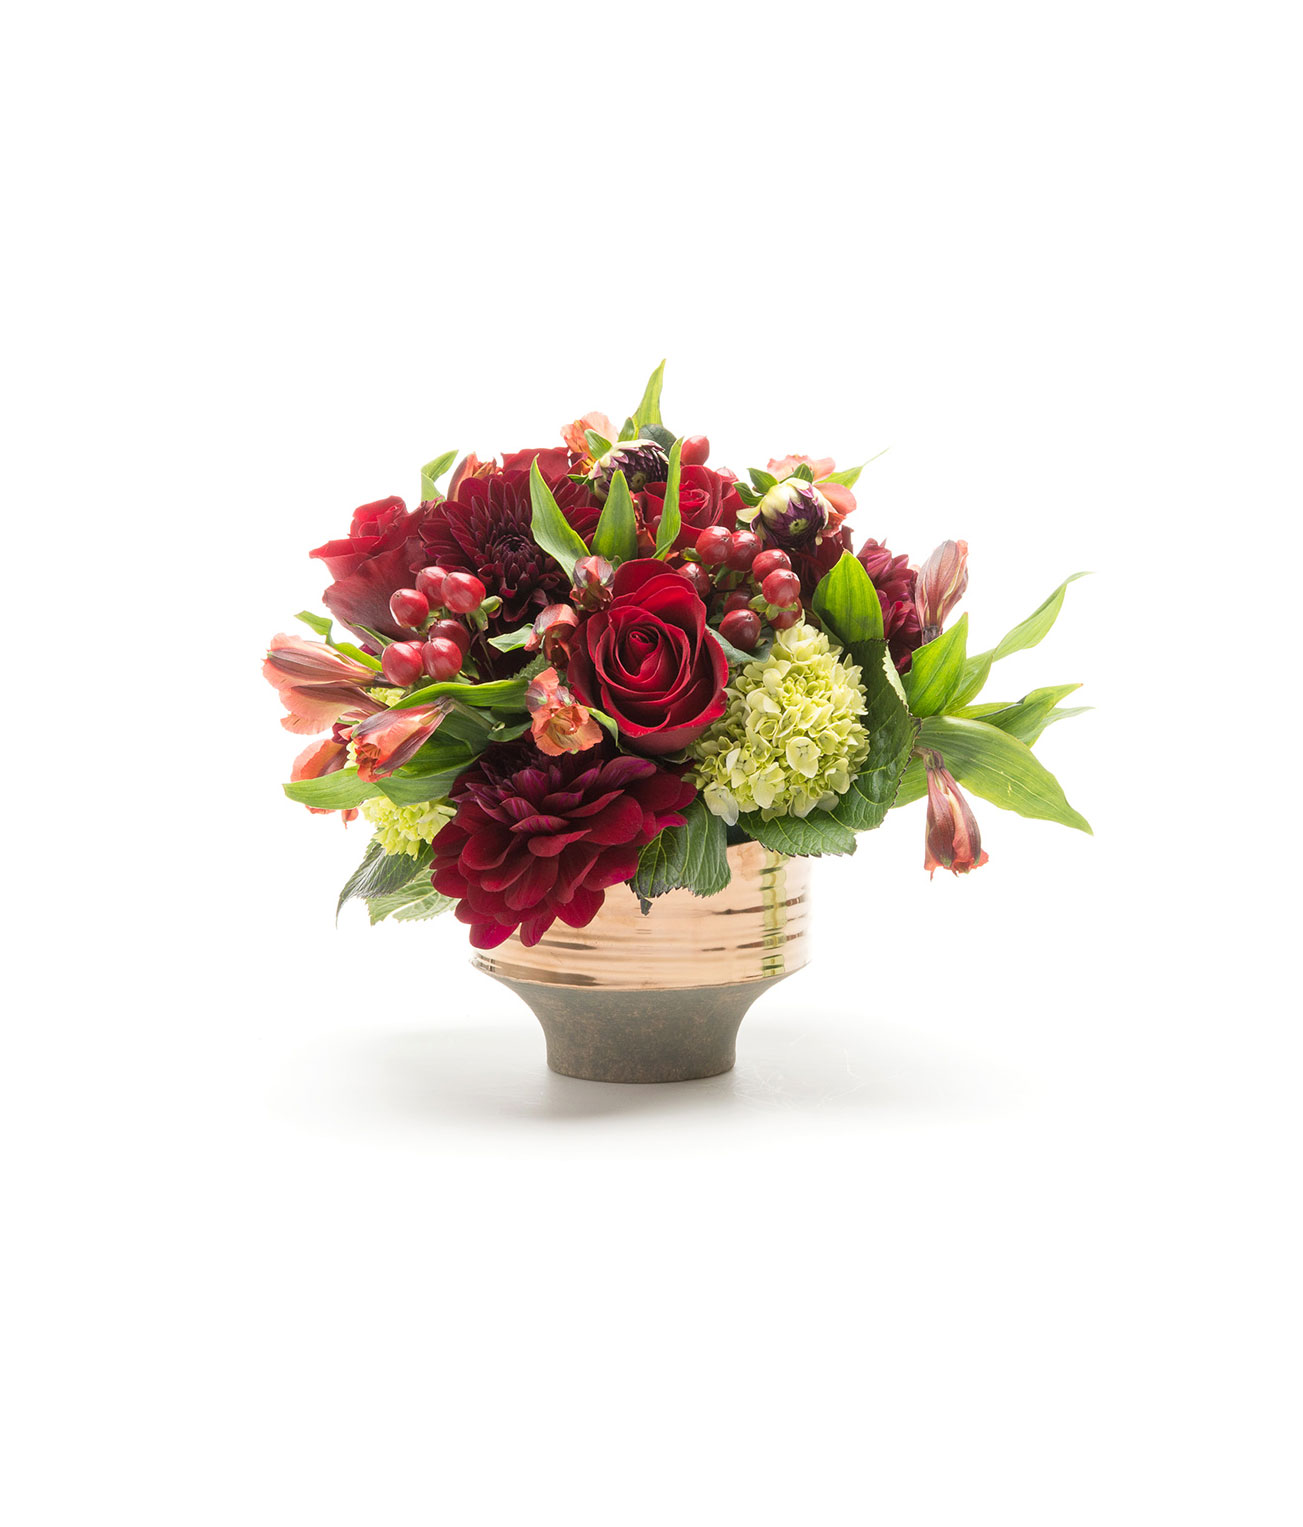 10 thanksgiving flower arrangement ideas from the pros